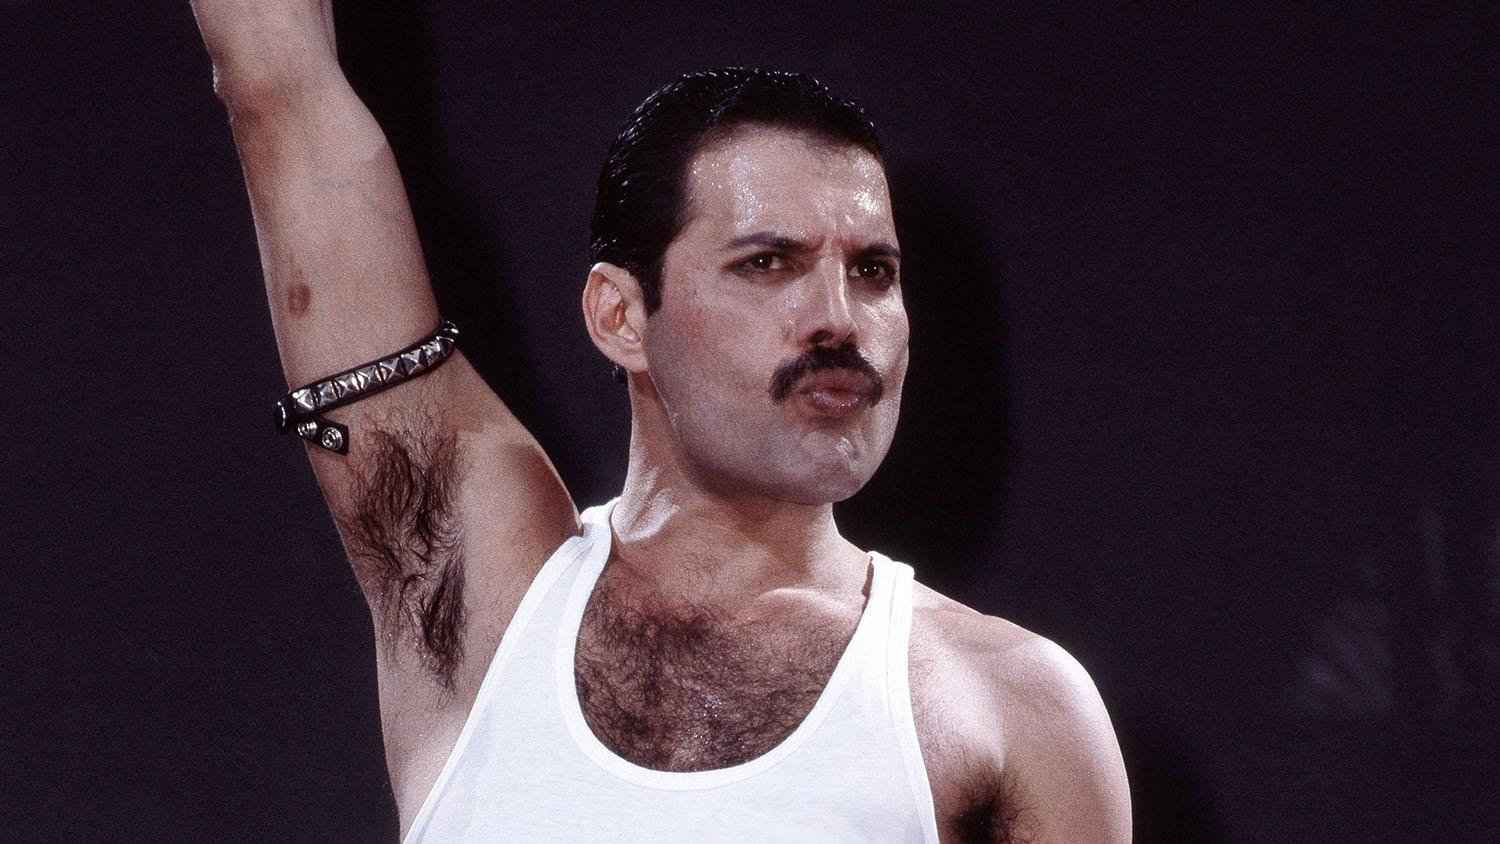 Freddie Mercury was the lead singer of Queen and a gay British icon